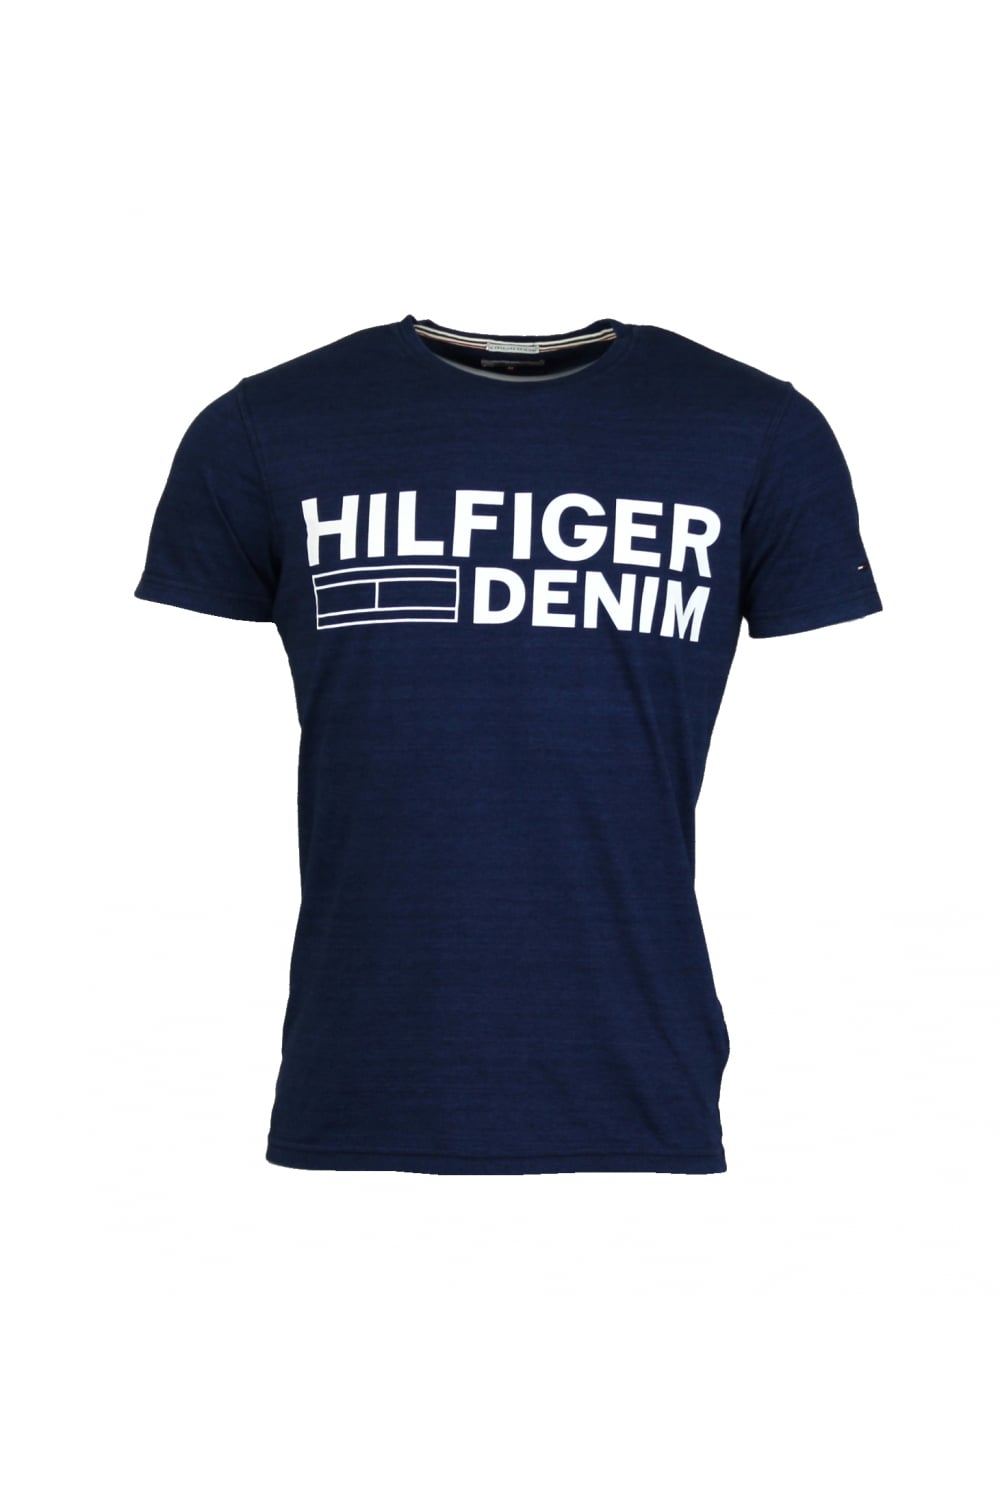 hilfiger denim basic logo t shirt dark indigo thirtysix. Black Bedroom Furniture Sets. Home Design Ideas